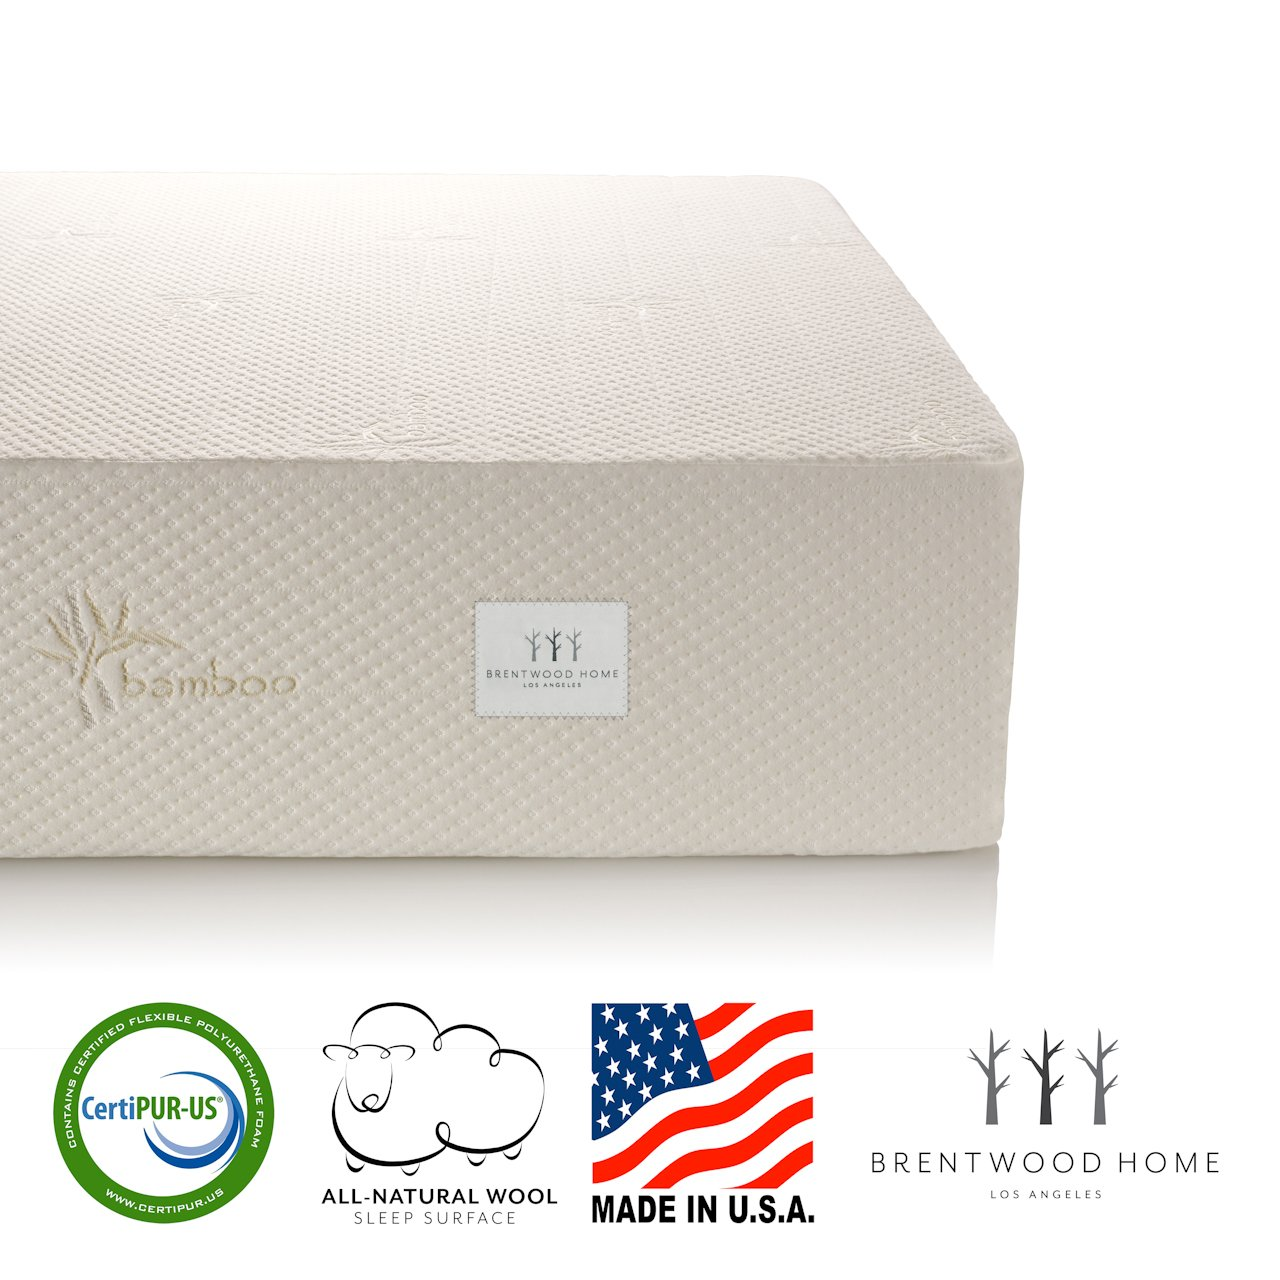 Brentwood Home Cypress Mattress, Bamboo Derived Rayon Cover, Gel Memory Foam, Made in USA, 13-Inch, Queen by Brentwood Home